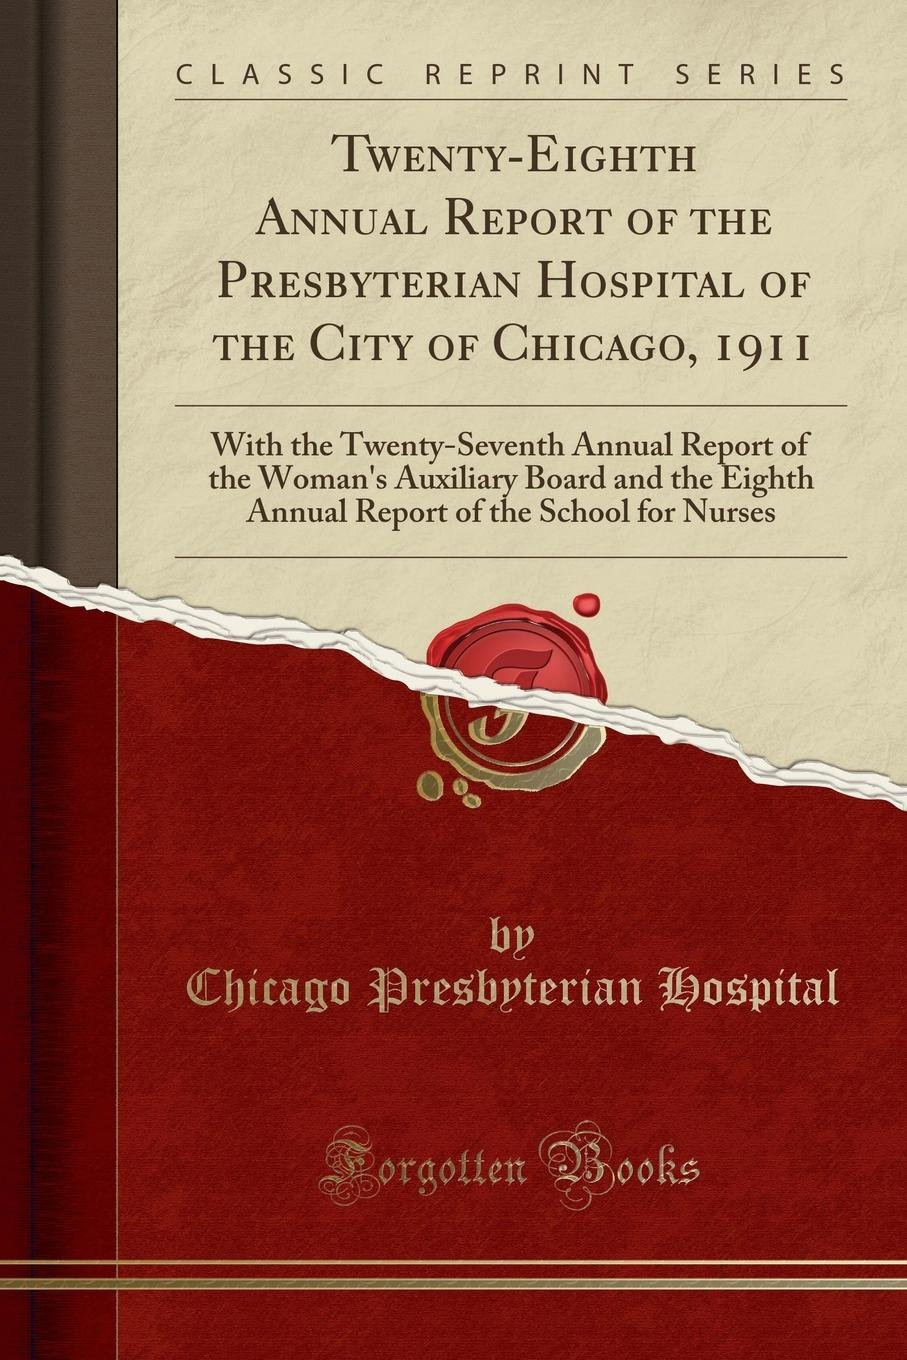 Download Twenty-Eighth Annual Report of the Presbyterian Hospital of the City of Chicago, 1911: With the Twenty-Seventh Annual Report of the Woman's Auxiliary ... of the School for Nurses (Classic Reprint) pdf